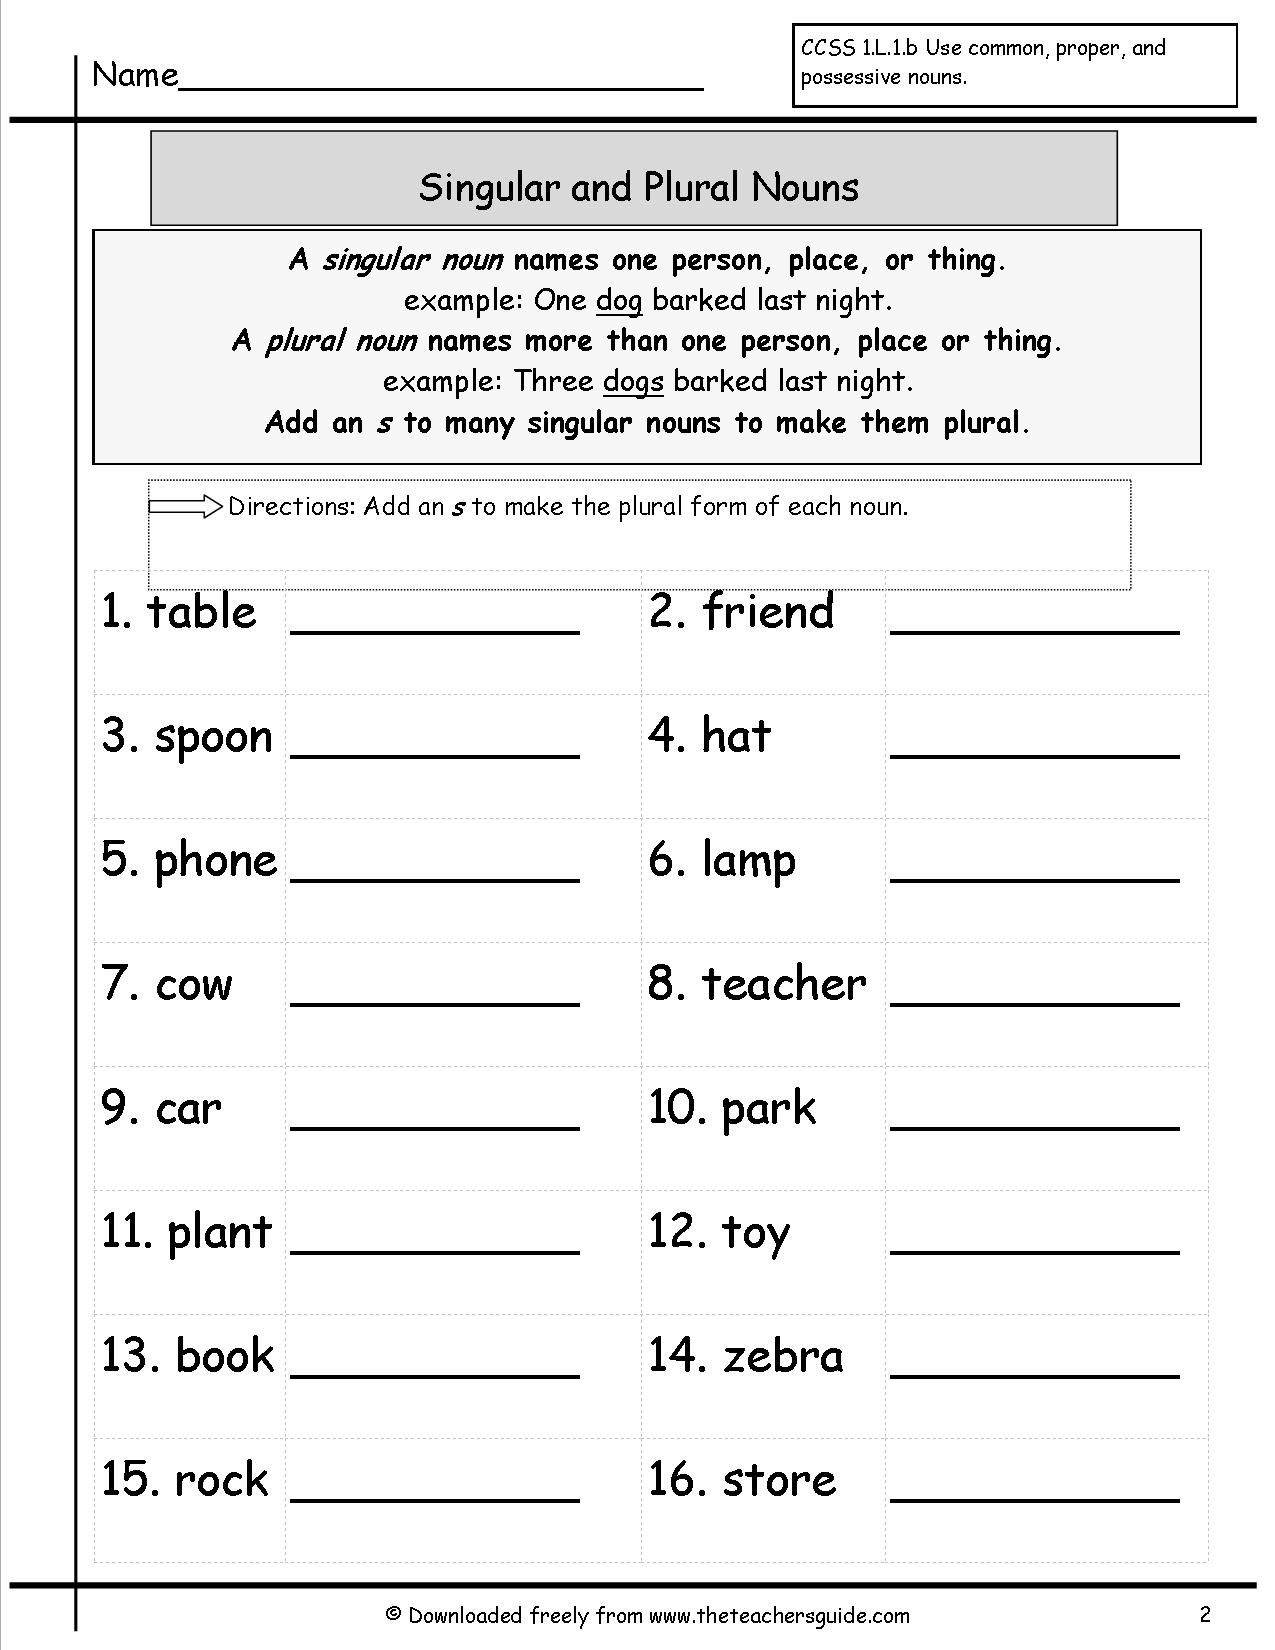 Singular and Plural Nouns Worksheets from The Teacher's Guide   Nouns  worksheet [ 1650 x 1275 Pixel ]